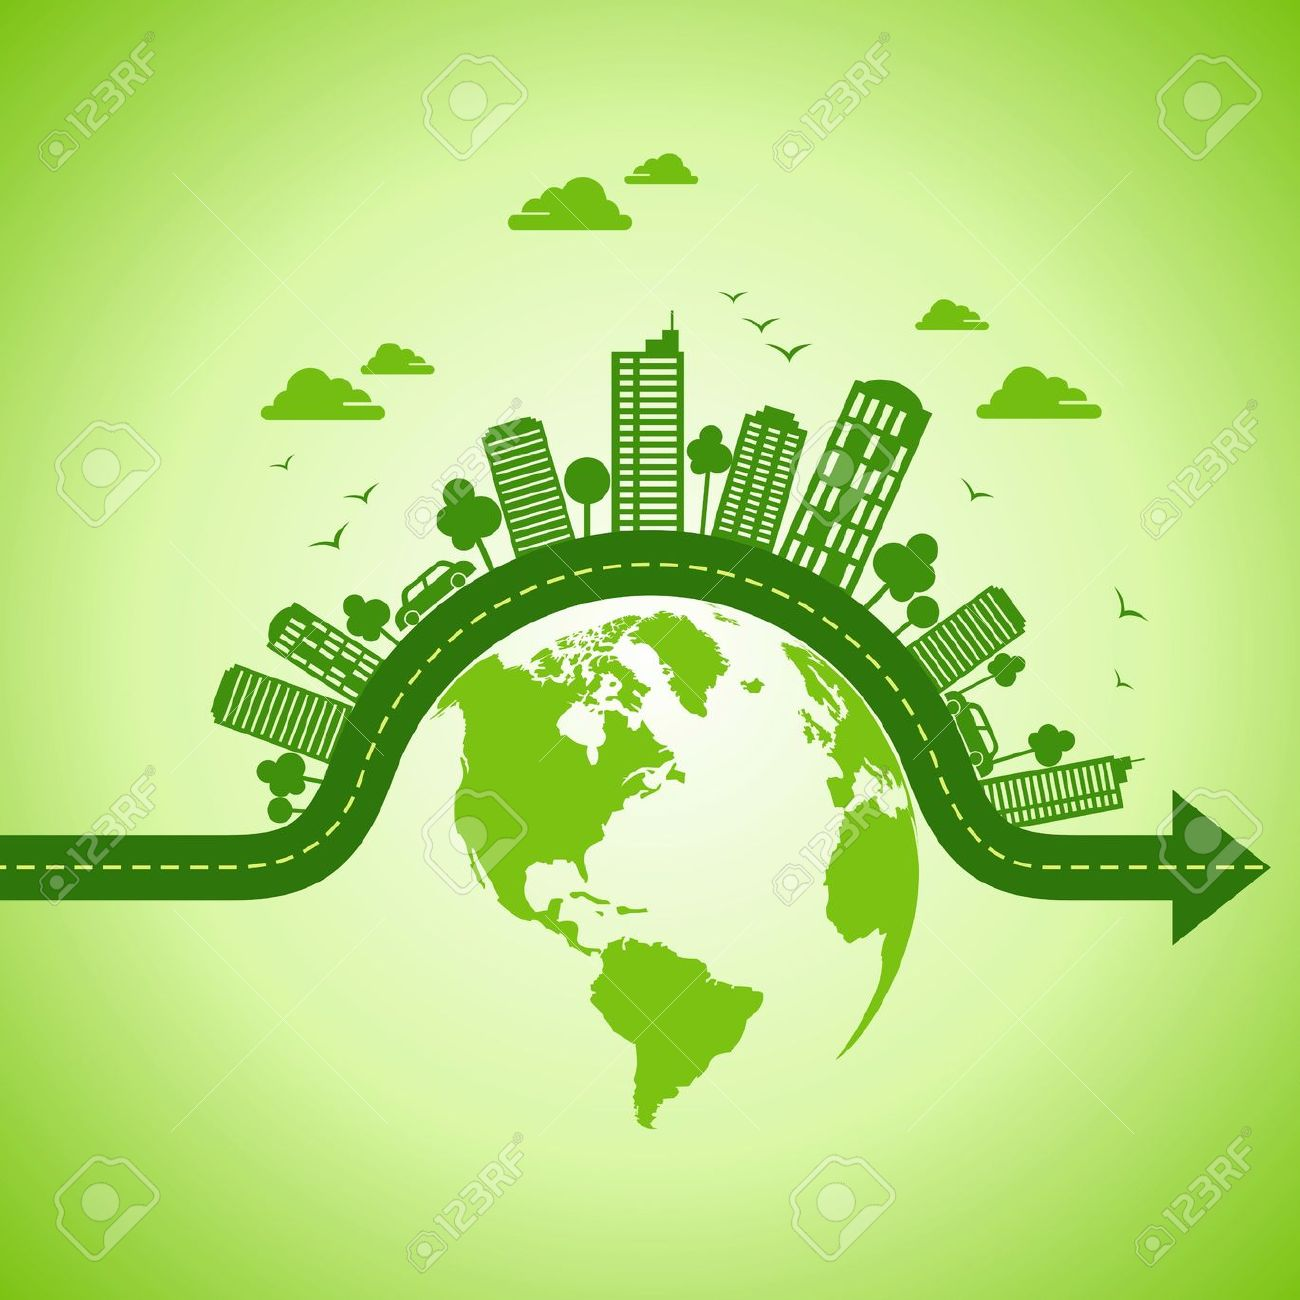 Sustainability Clipart 20 Free Cliparts Download Images